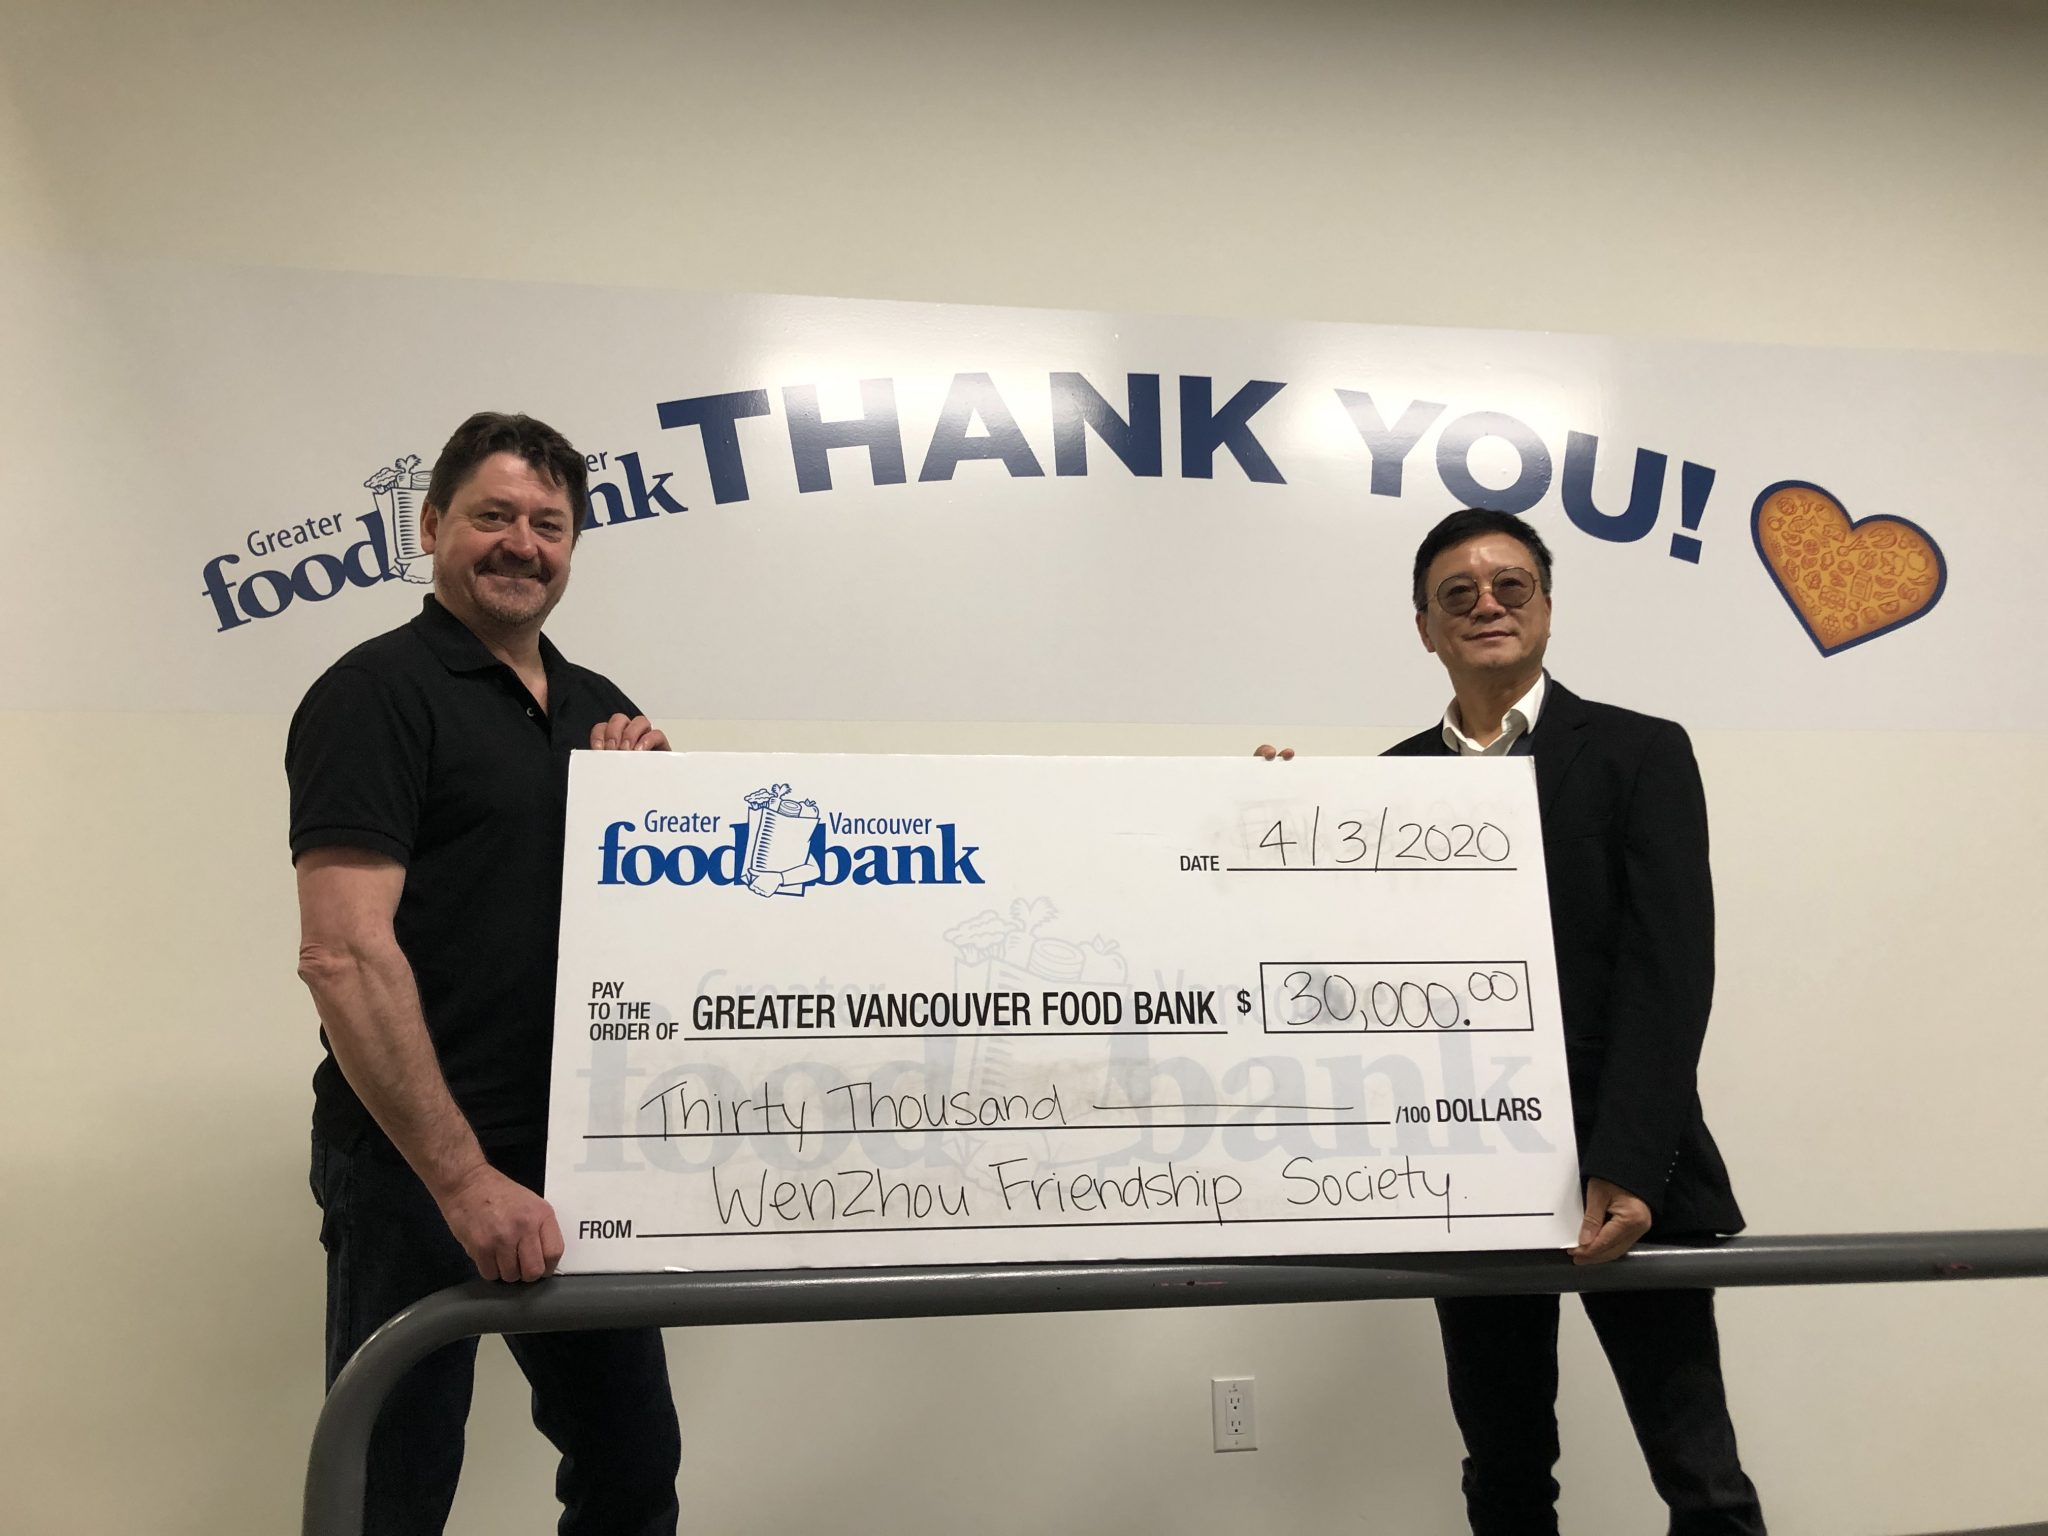 Wenzhou Friendship Society makes $30,000 food bank donation for COVID-19 relief assistance